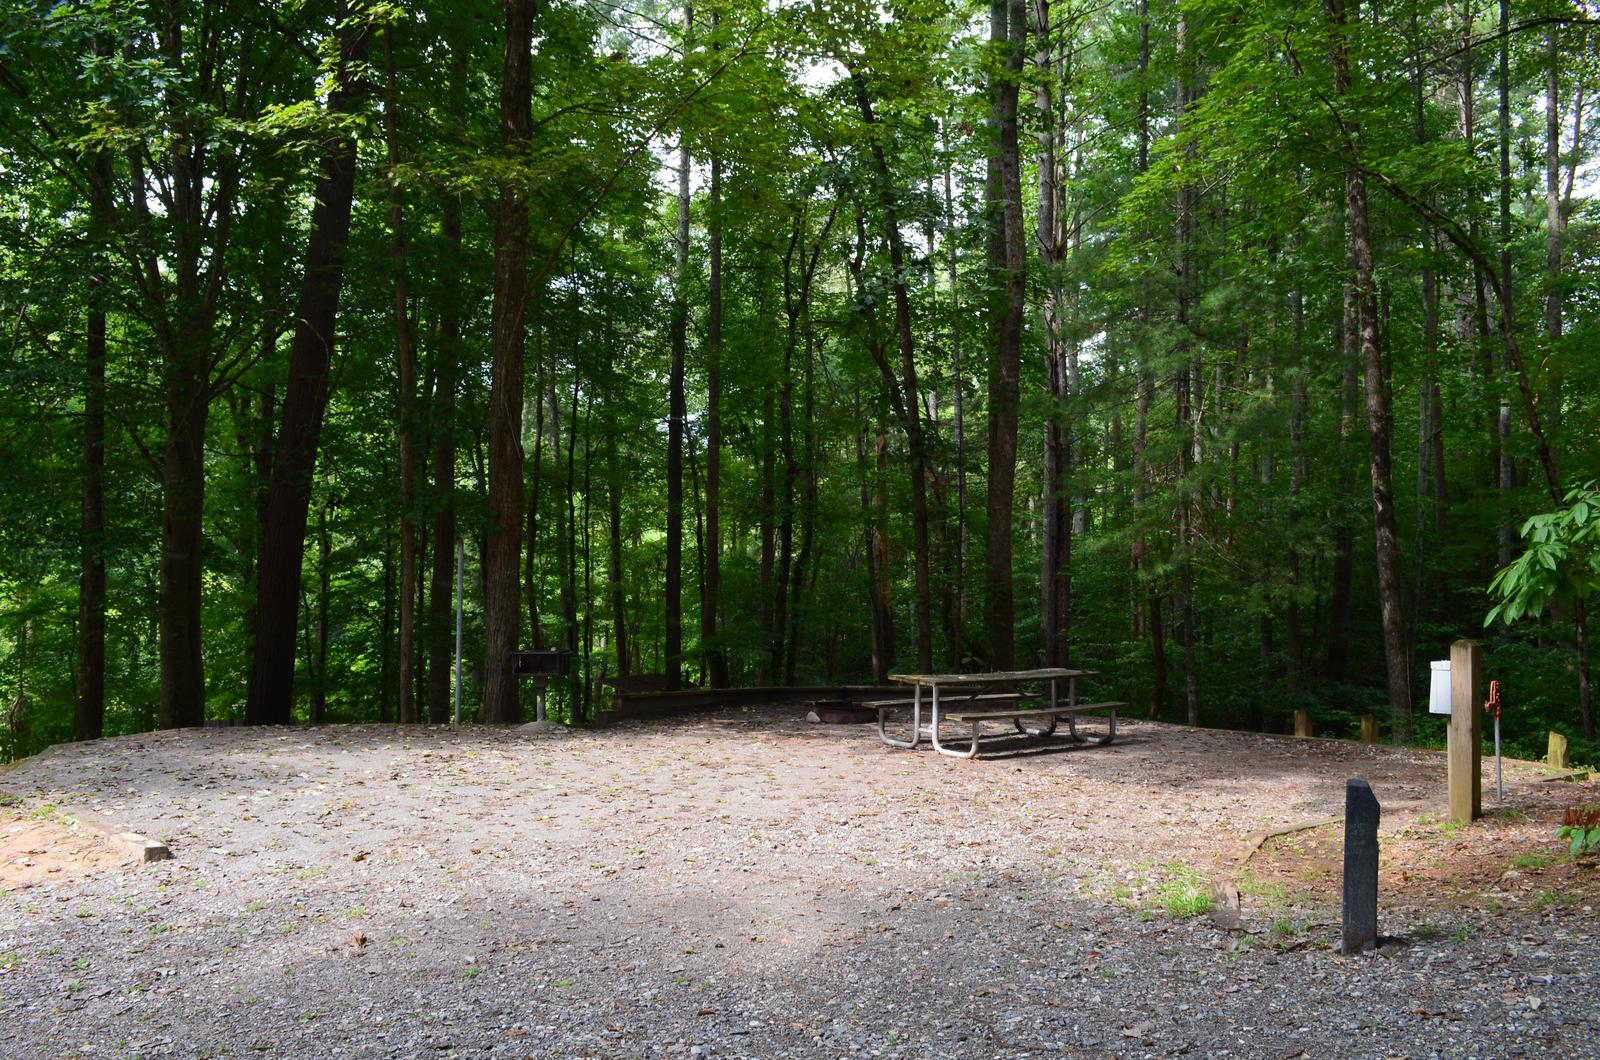 Gravel site with fire pit, table, grill Gravel site with fire pit, table, grill